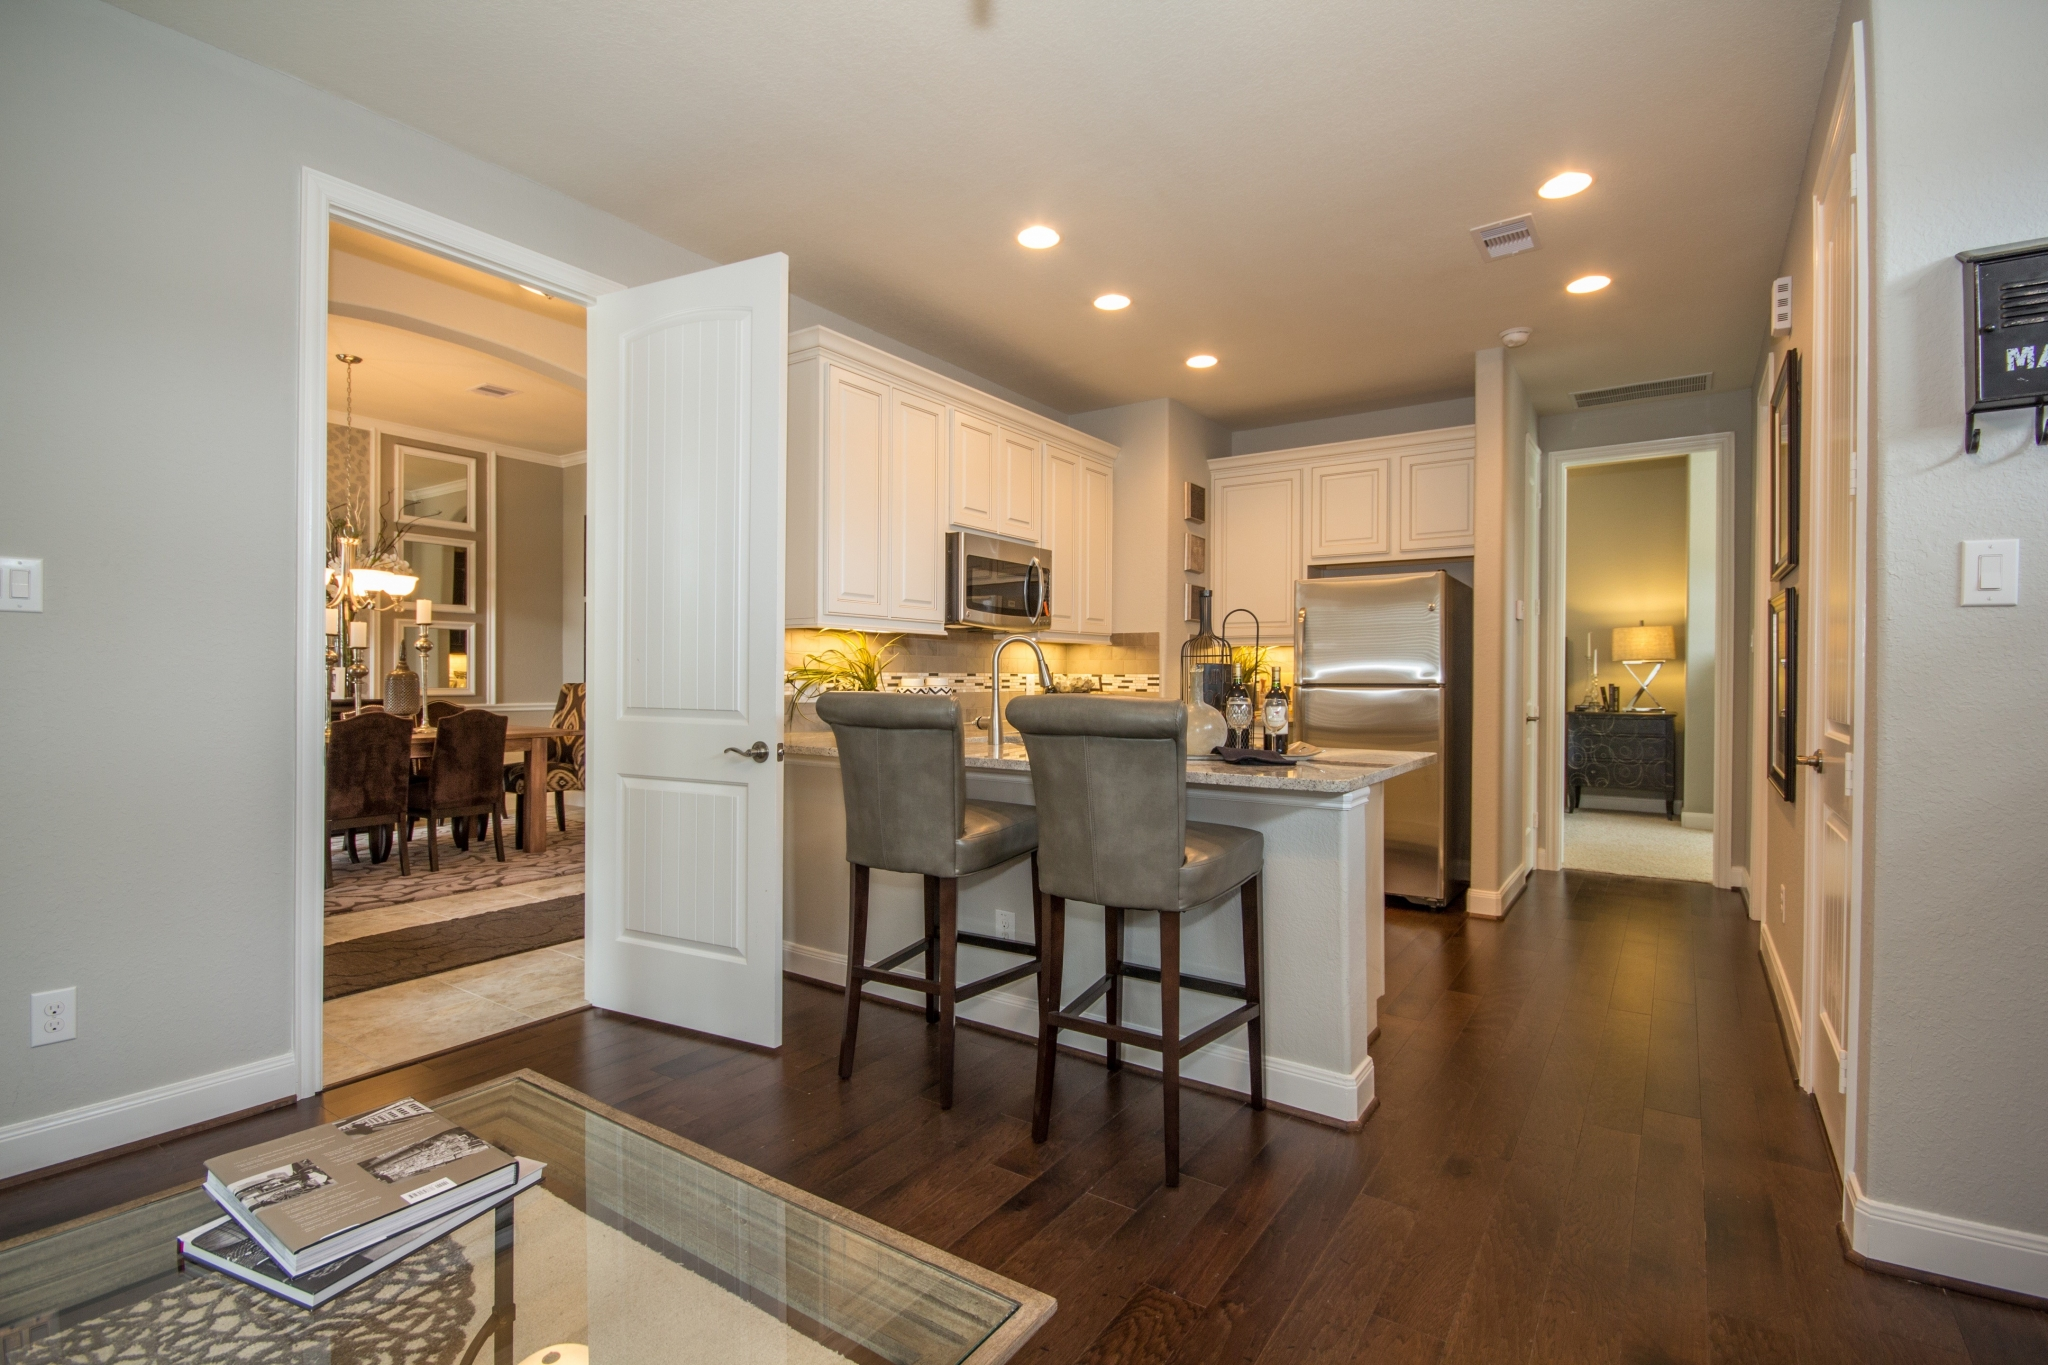 New houston home designs include multigenerational options